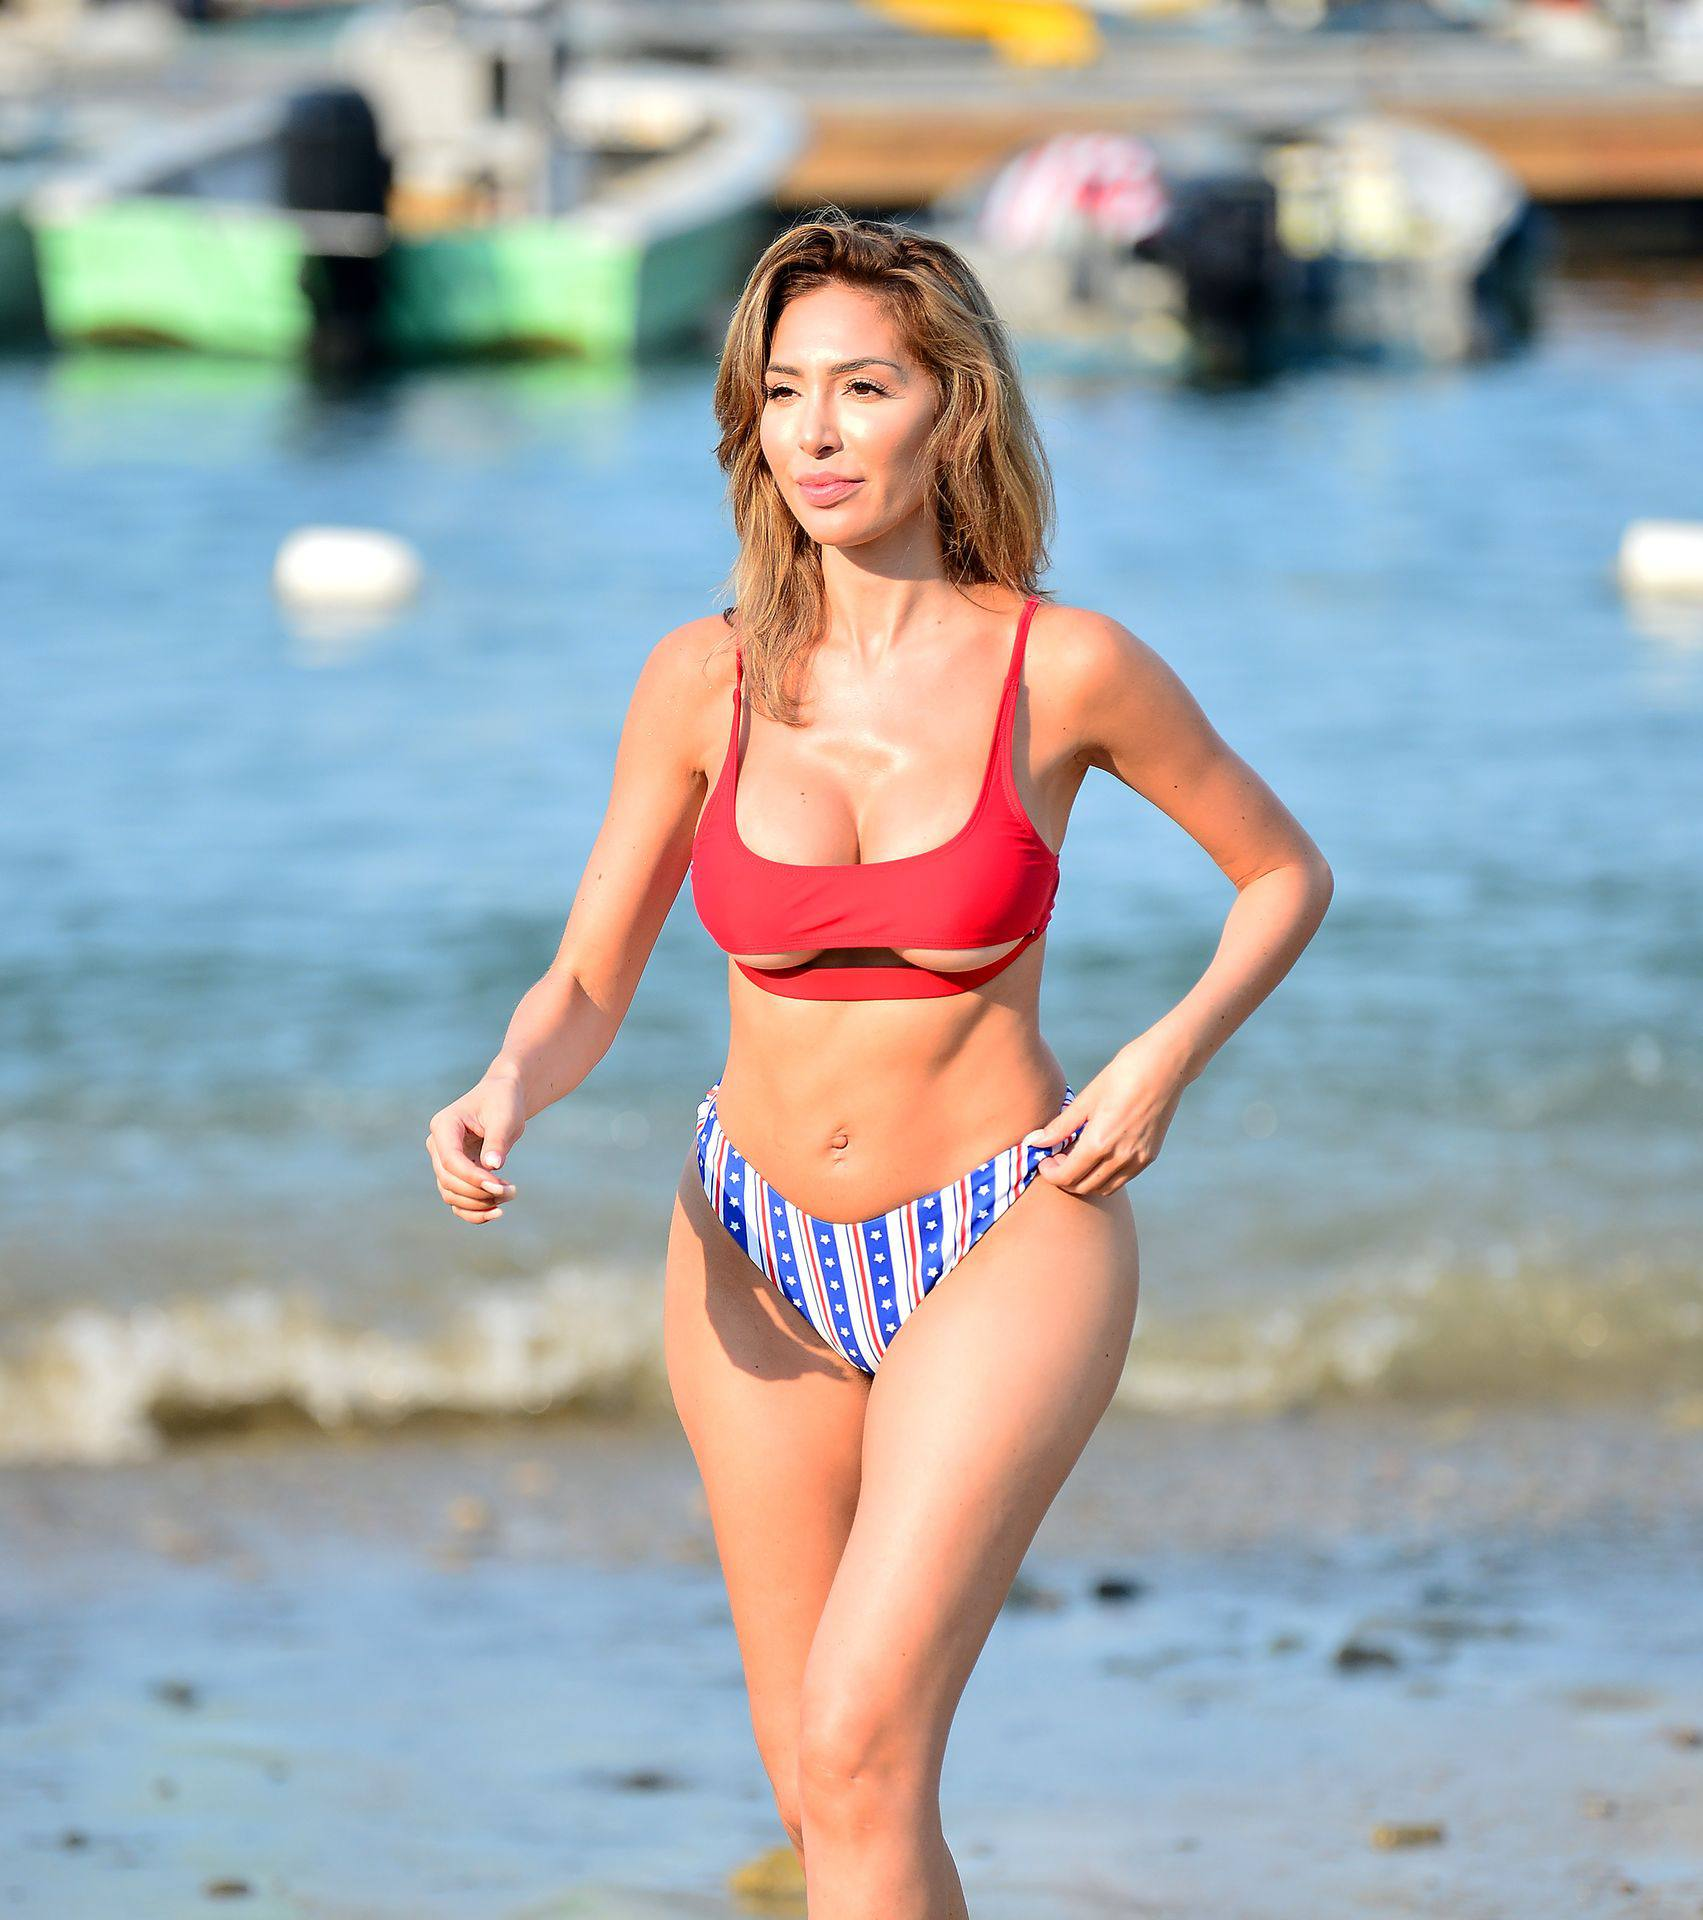 Farrah Abraham - Sexy Big Ass and Boobs in Bikini in Catalina Island